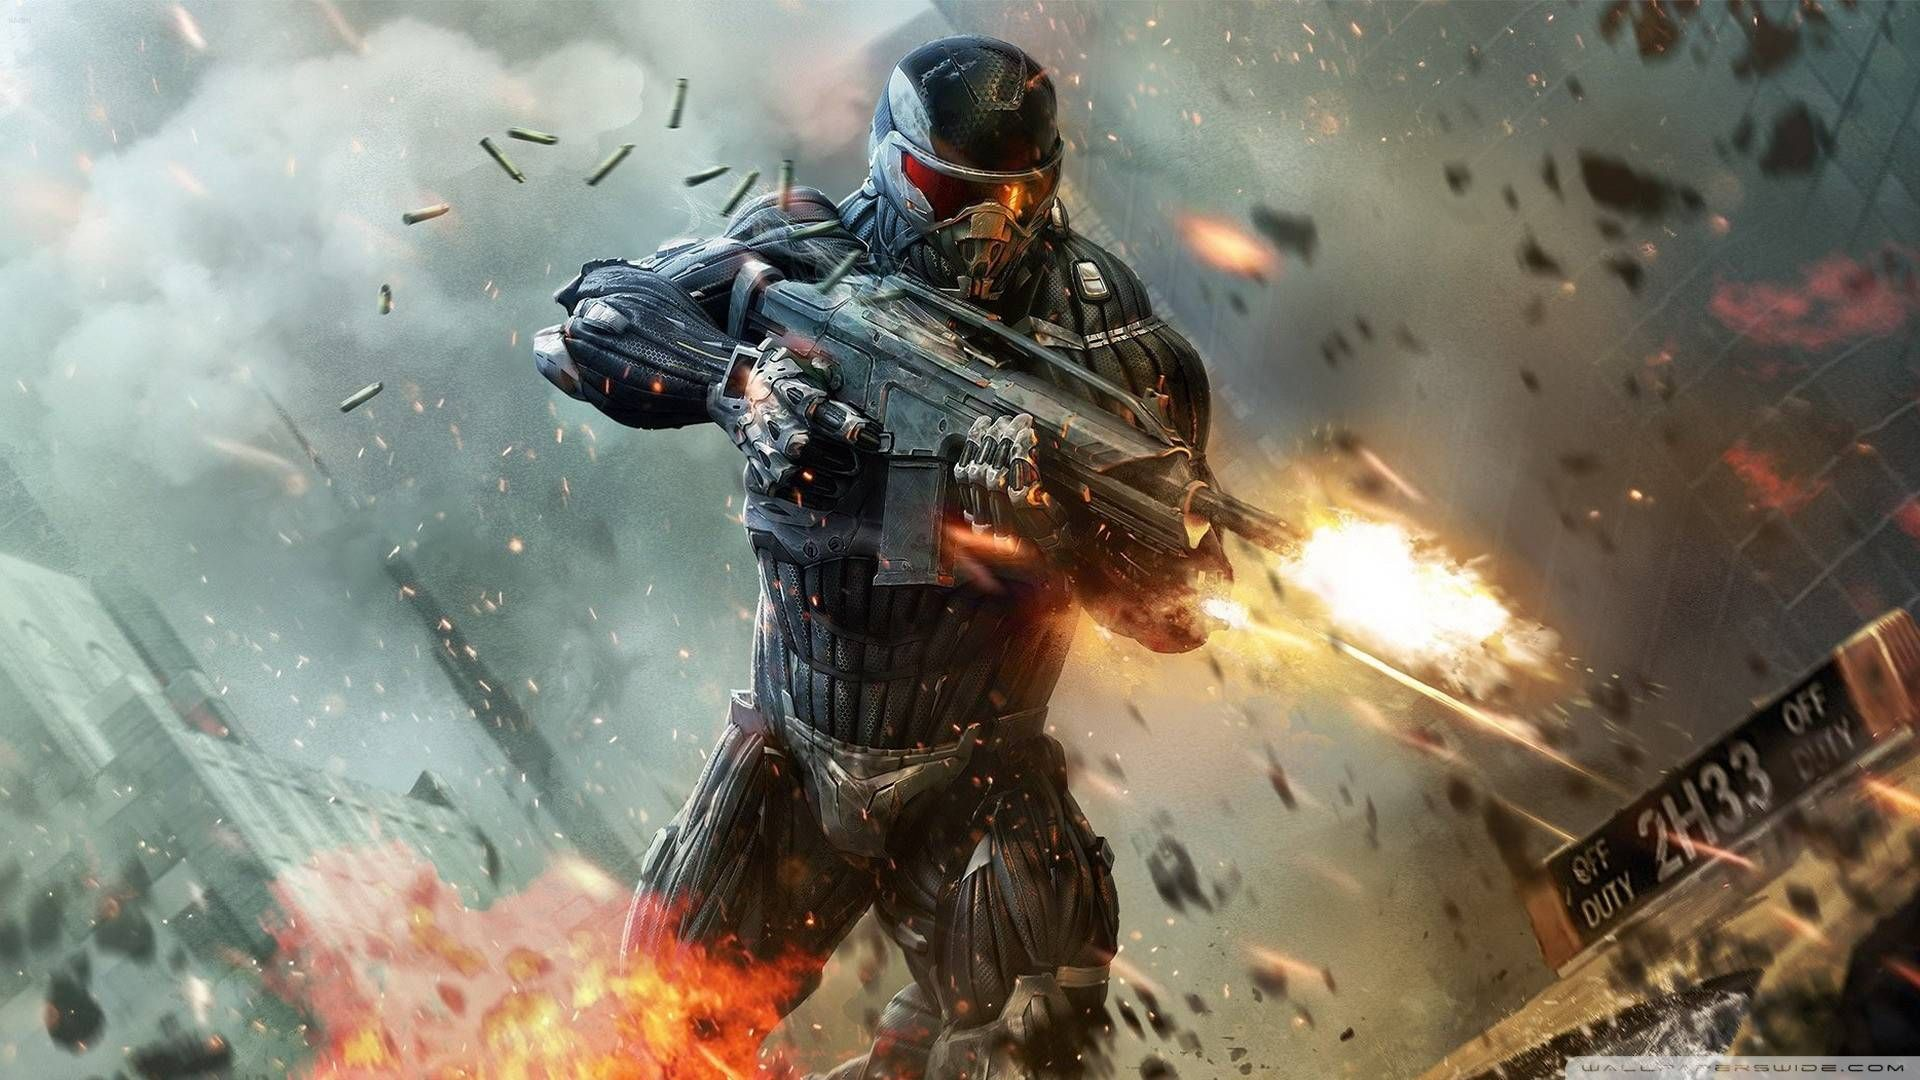 Hd Wallpapers Widescreen 1080p 3d View Full Size More Crysis 2 Wallpaper Full Hd 1080p Pc 1 Action Wallpaper Gaming Wallpapers Hd Wallpaper